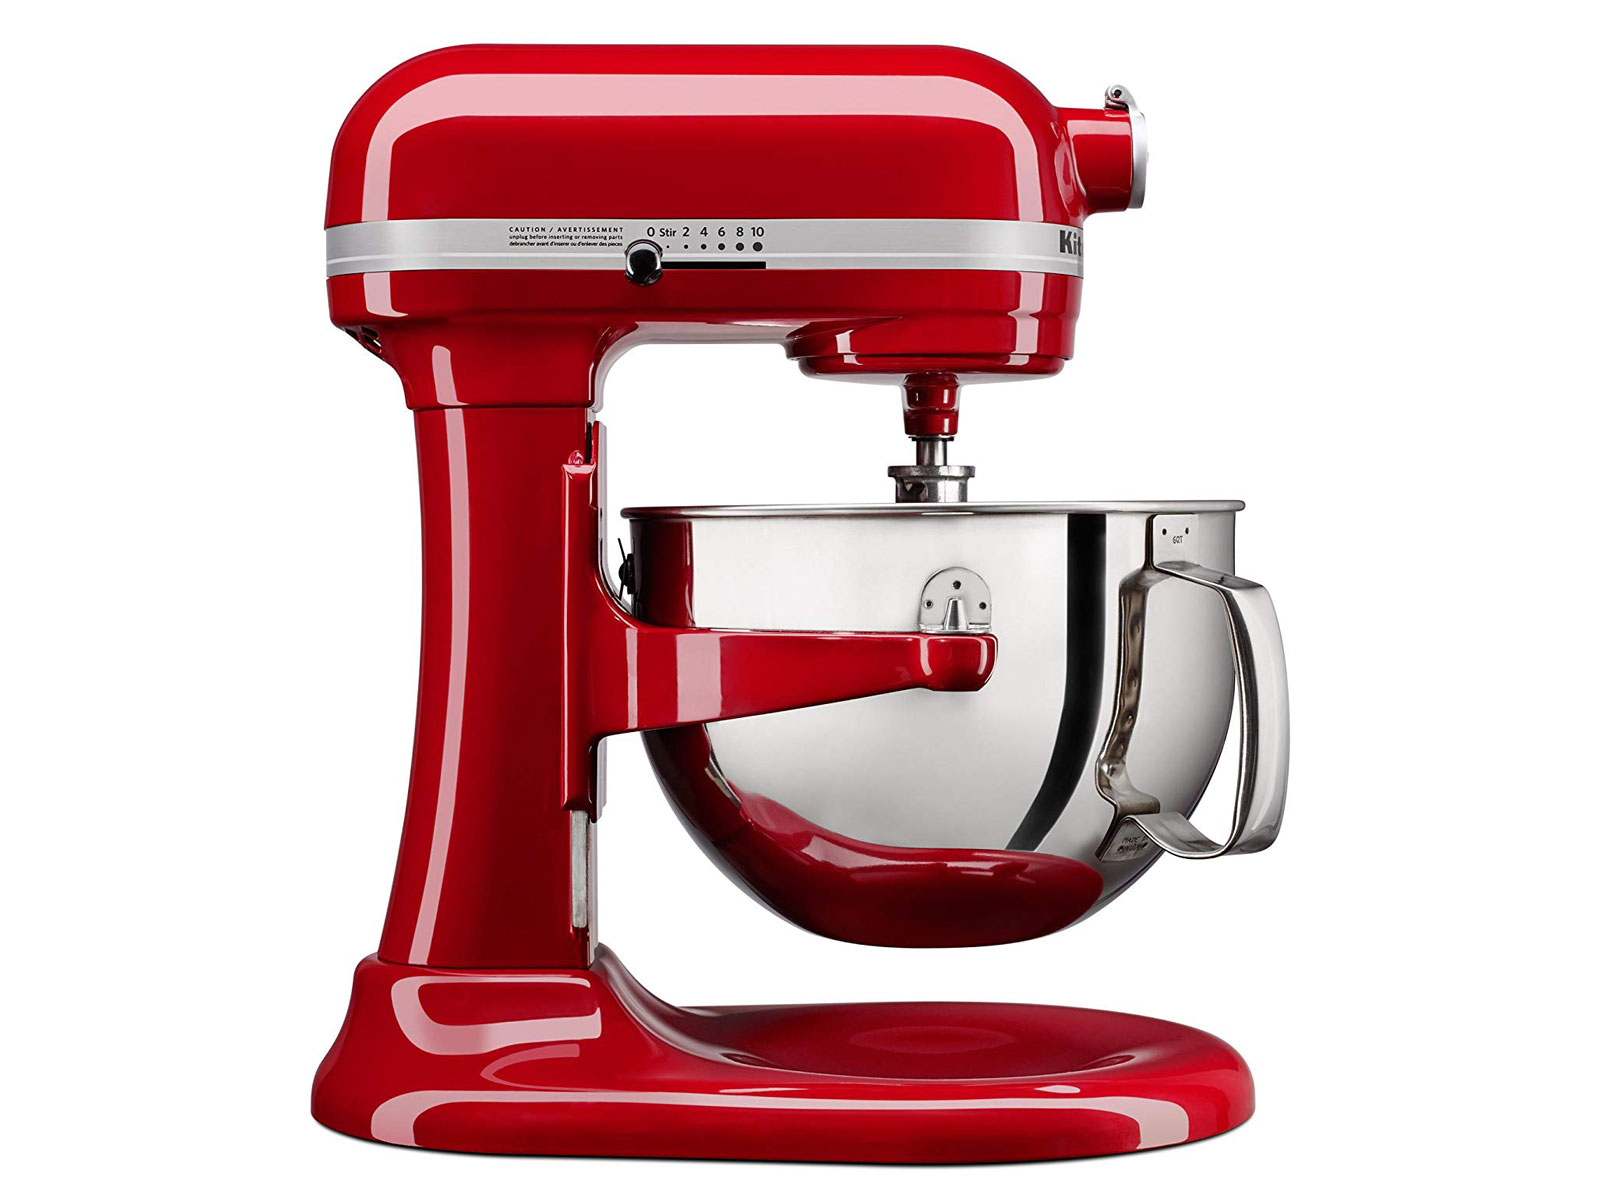 Awe Inspiring Amazon Launches Black Friday Kitchenaid Deals A Month Early Home Interior And Landscaping Ologienasavecom